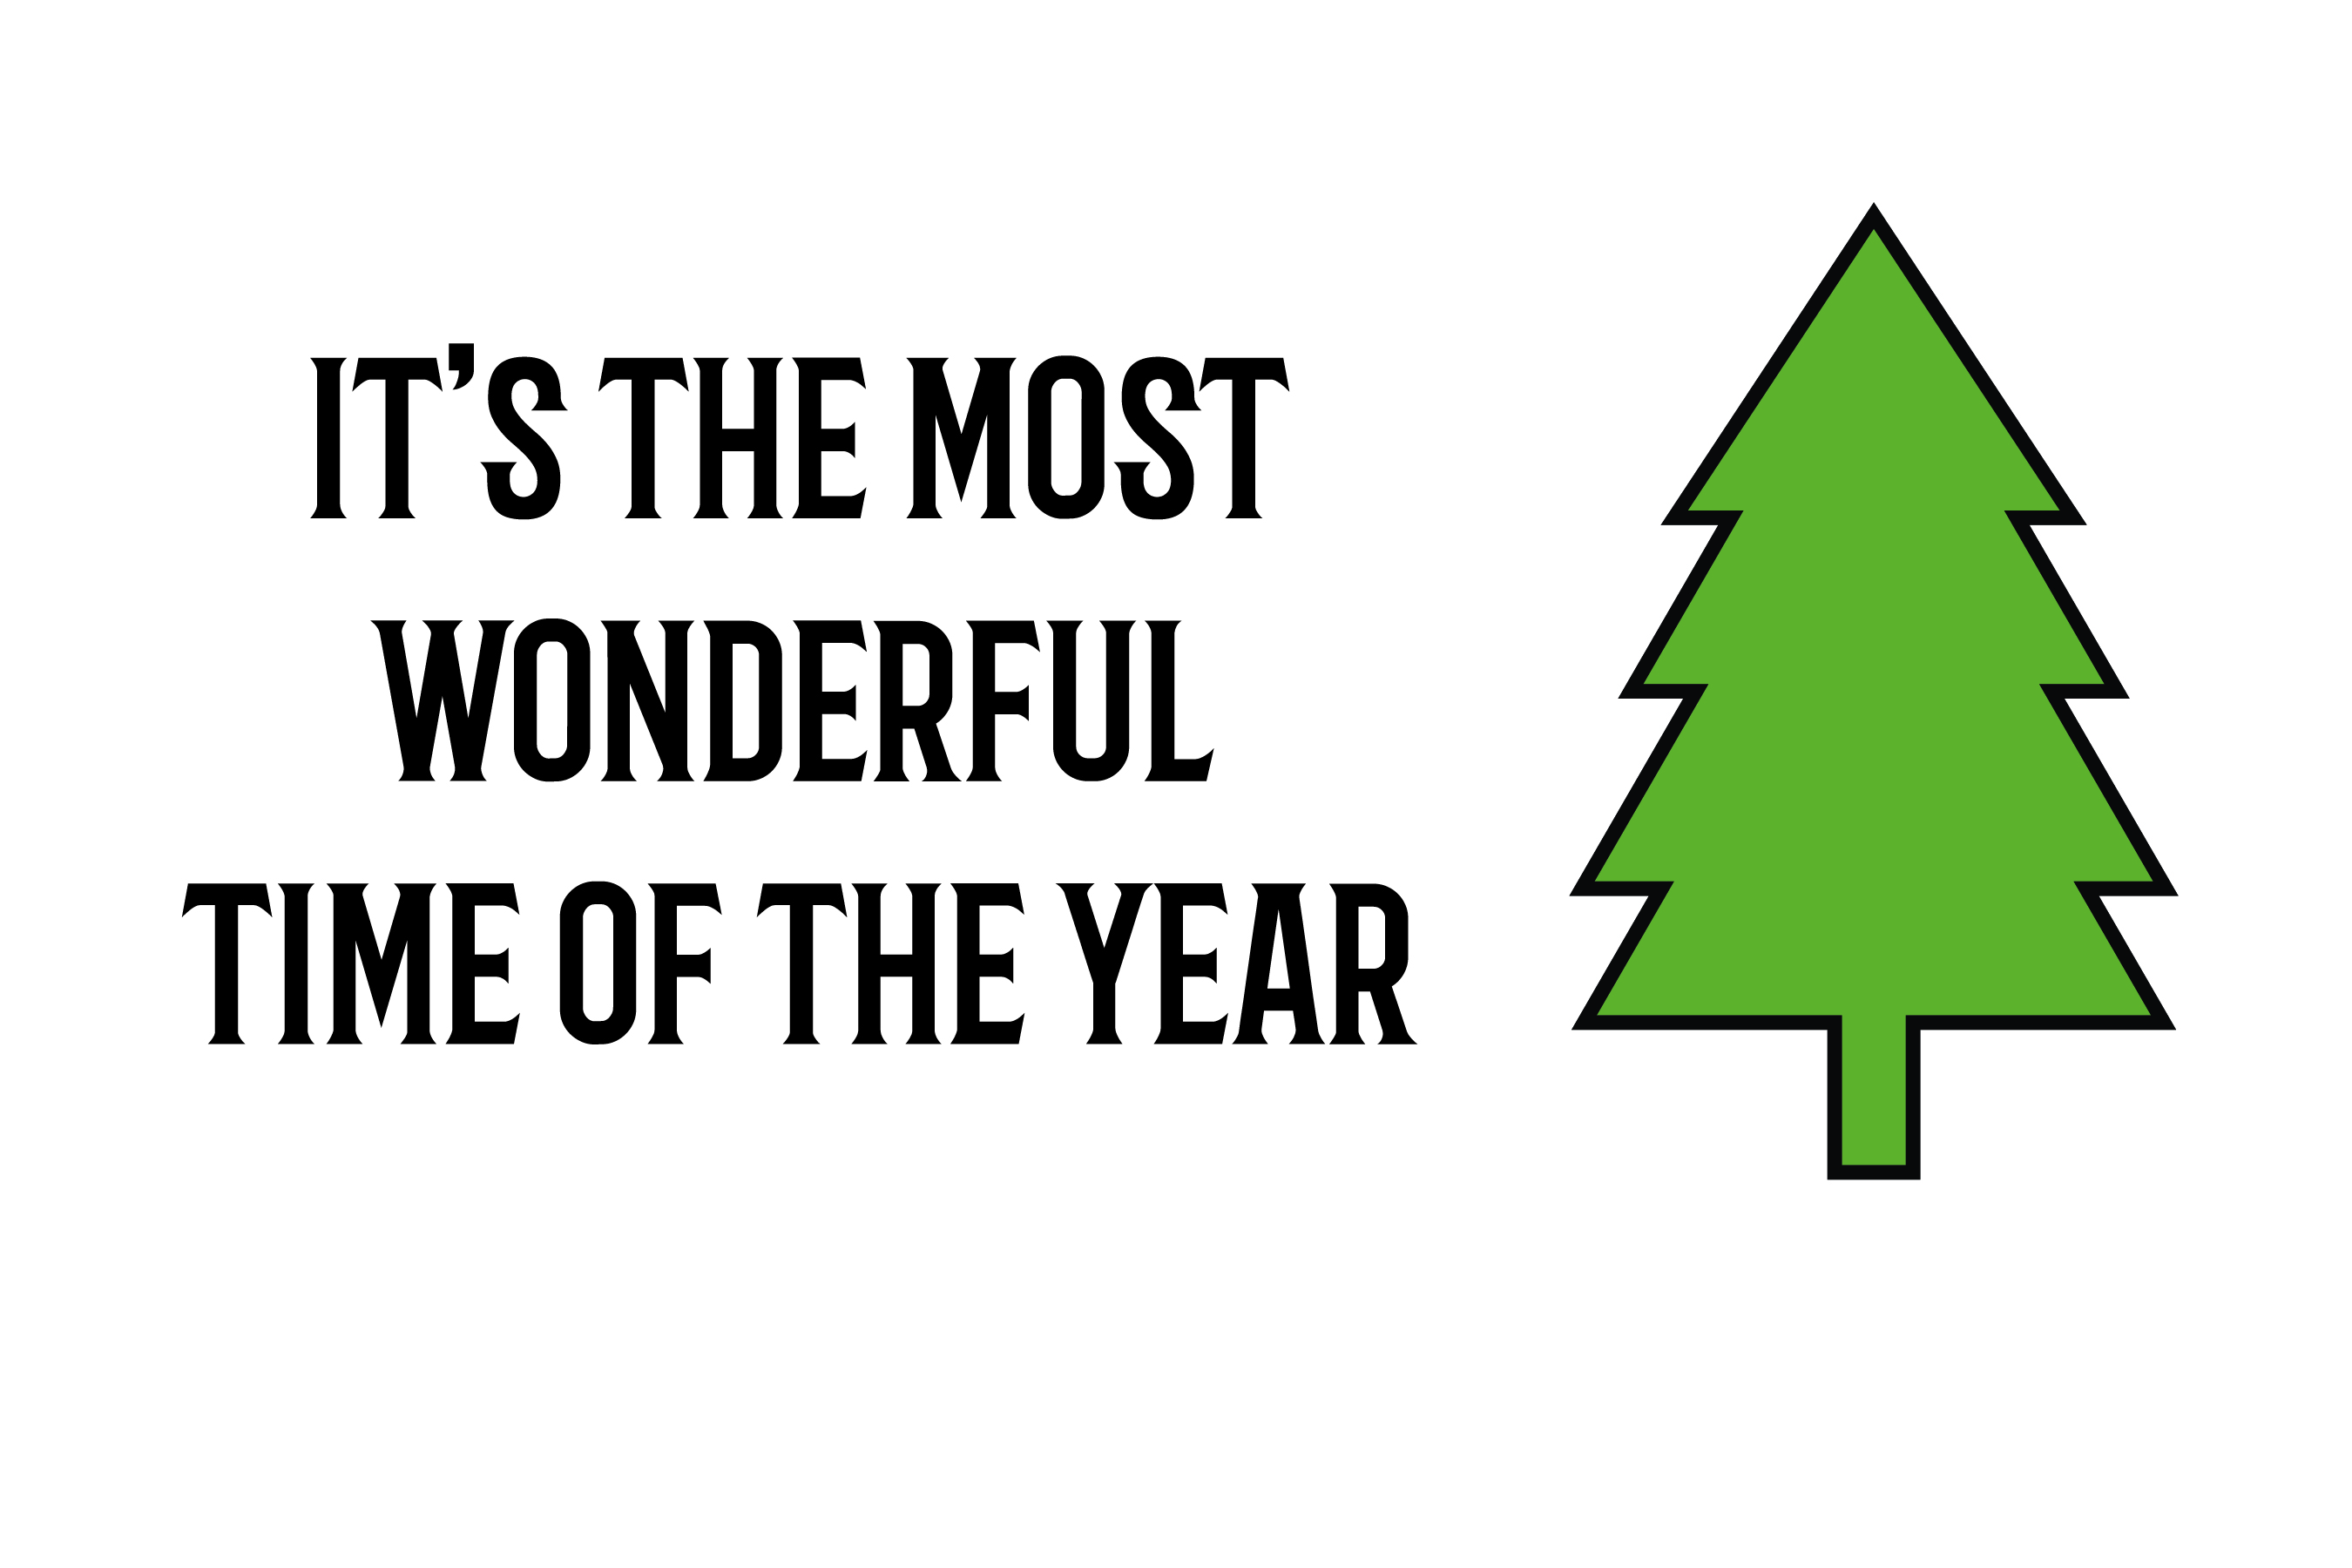 Wonderful time of the year - SVG Bundle 16 Designs example image 4